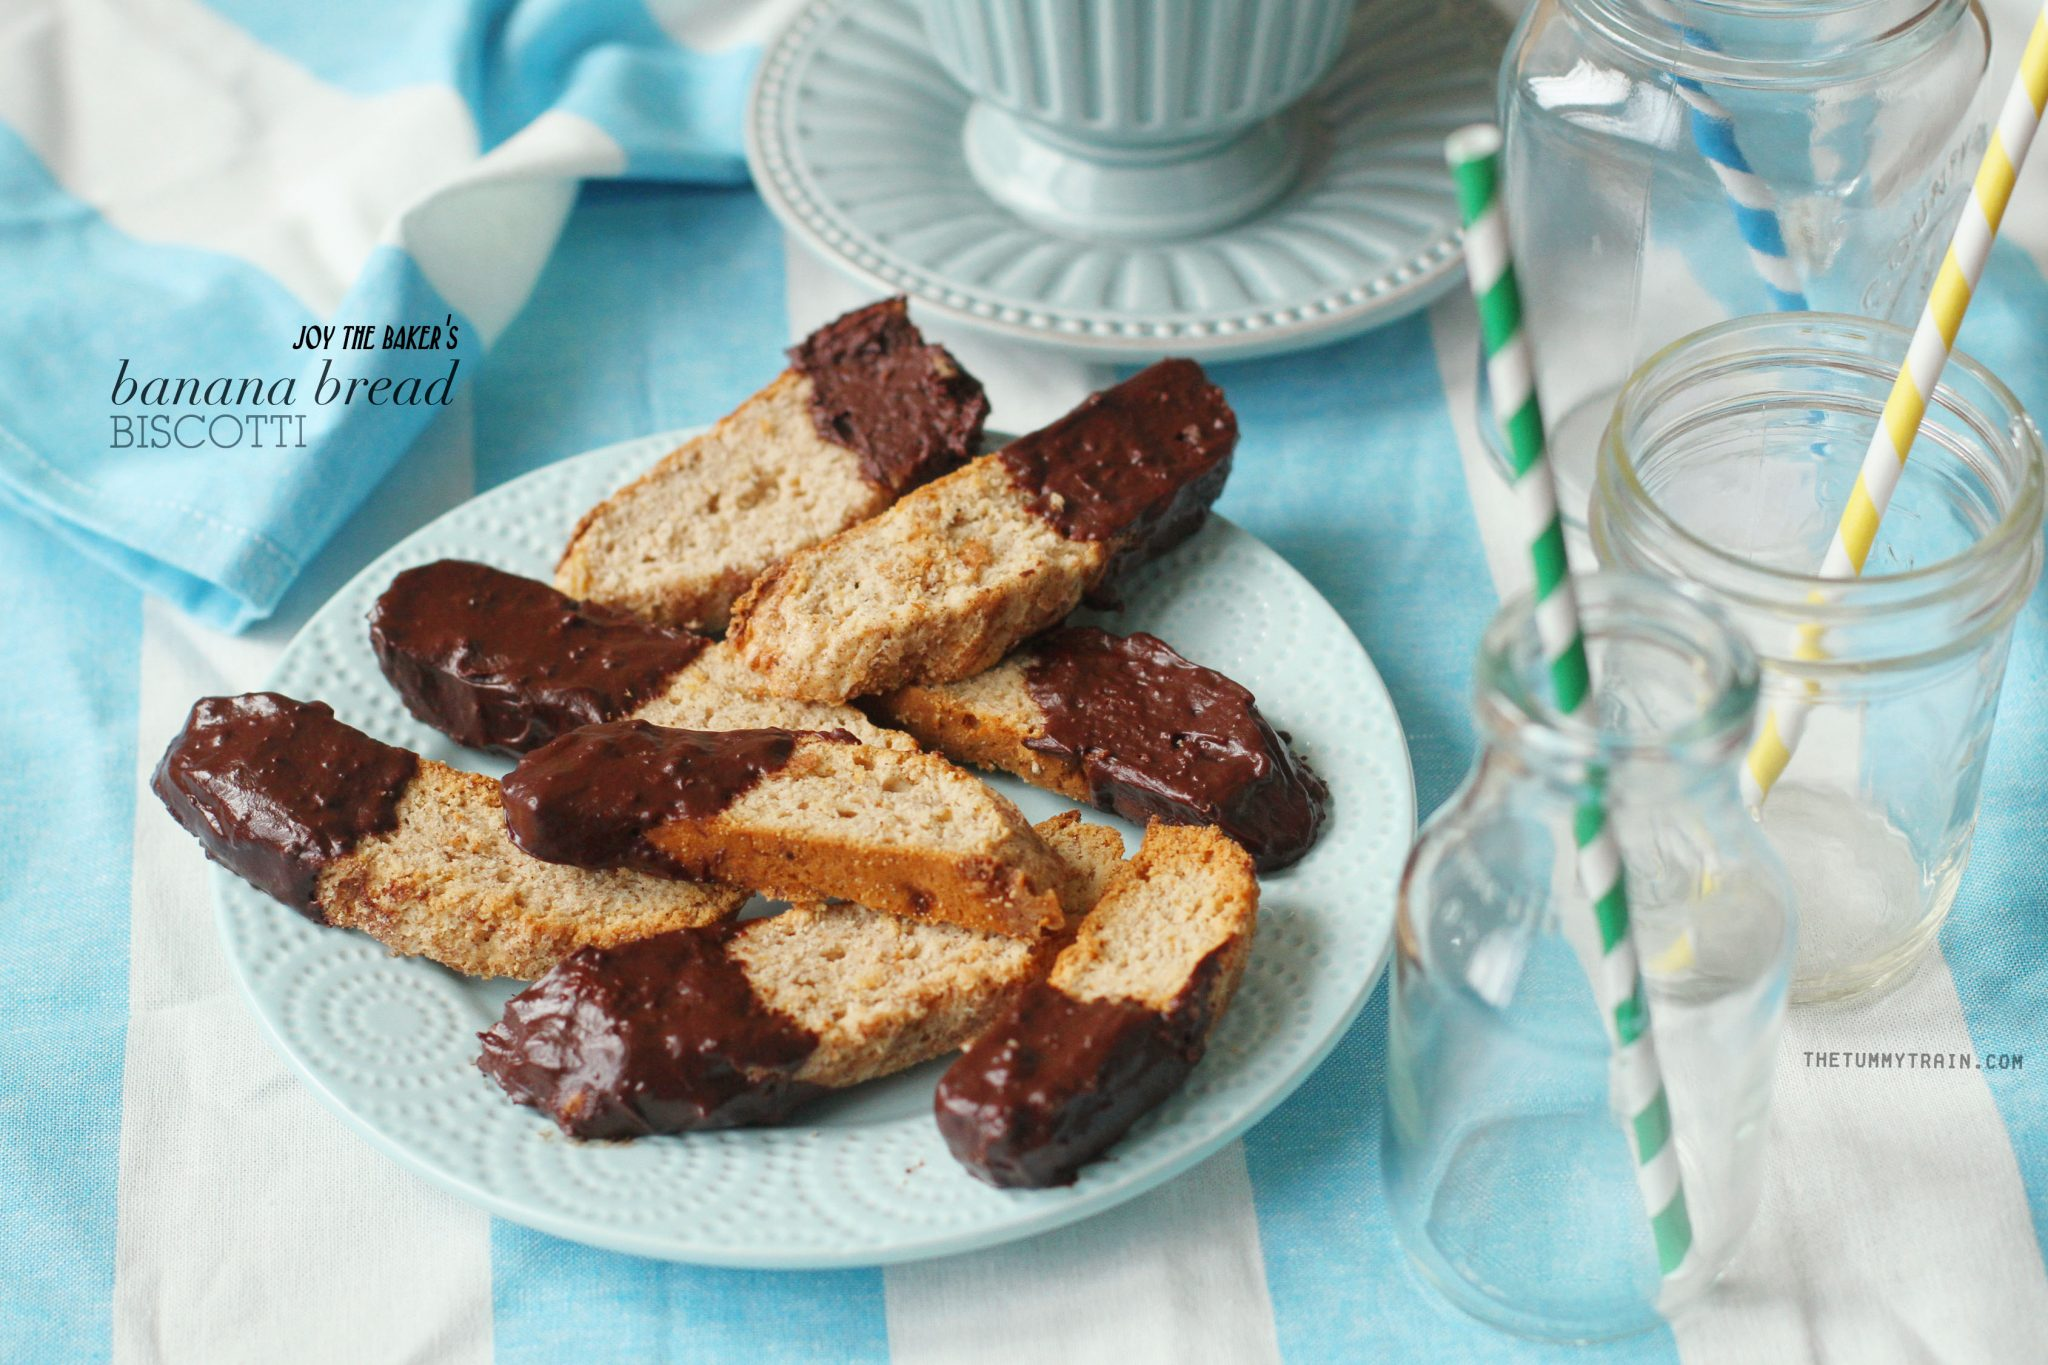 Banana Bread Biscotti 1 - These Banana Bread Biscotti with Chocolate are the most epic biscotti ever!